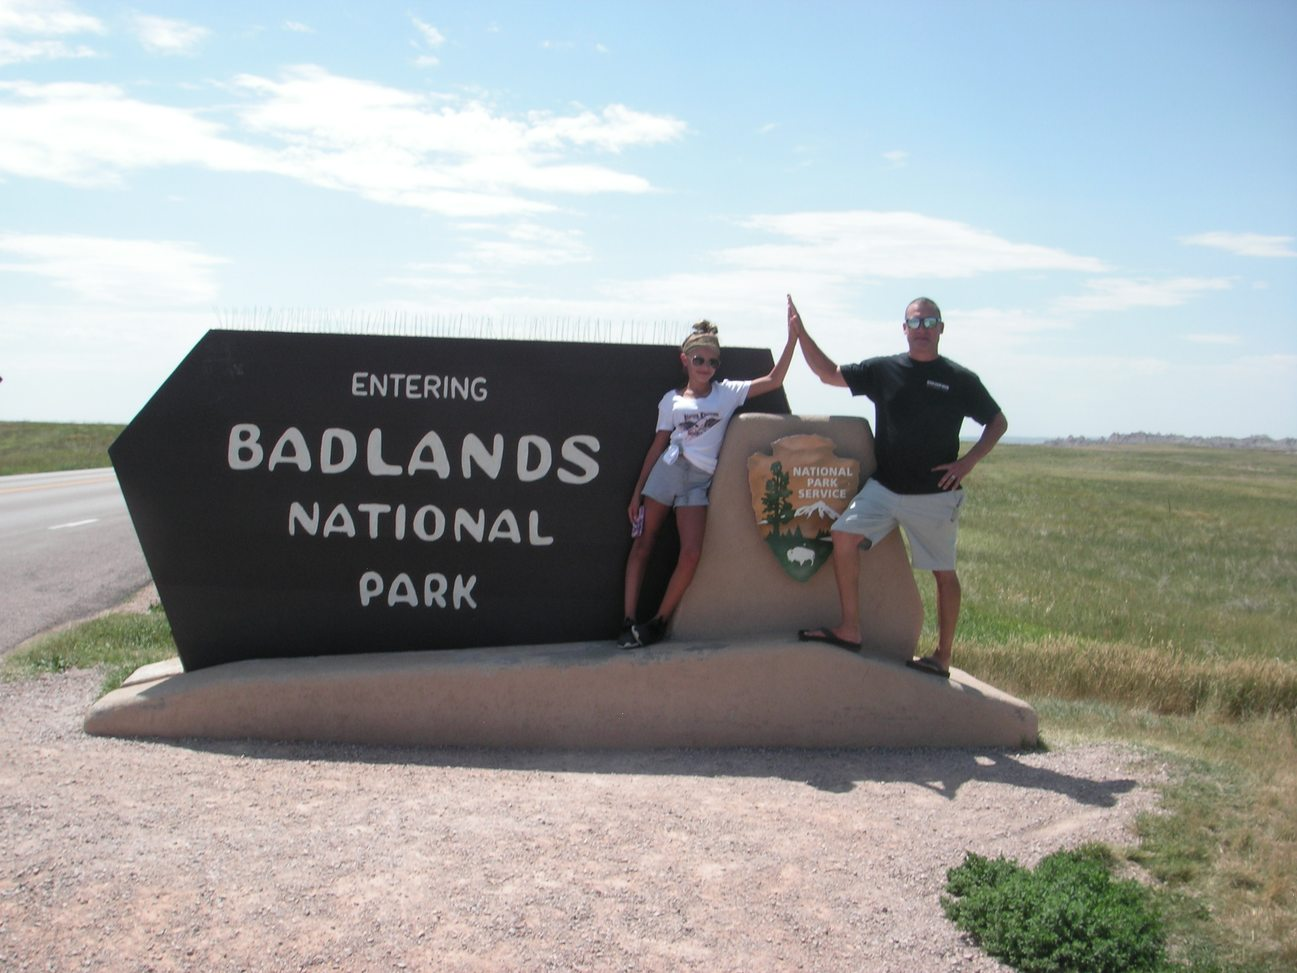 sharks in the badlands 928s event badlands national park sign